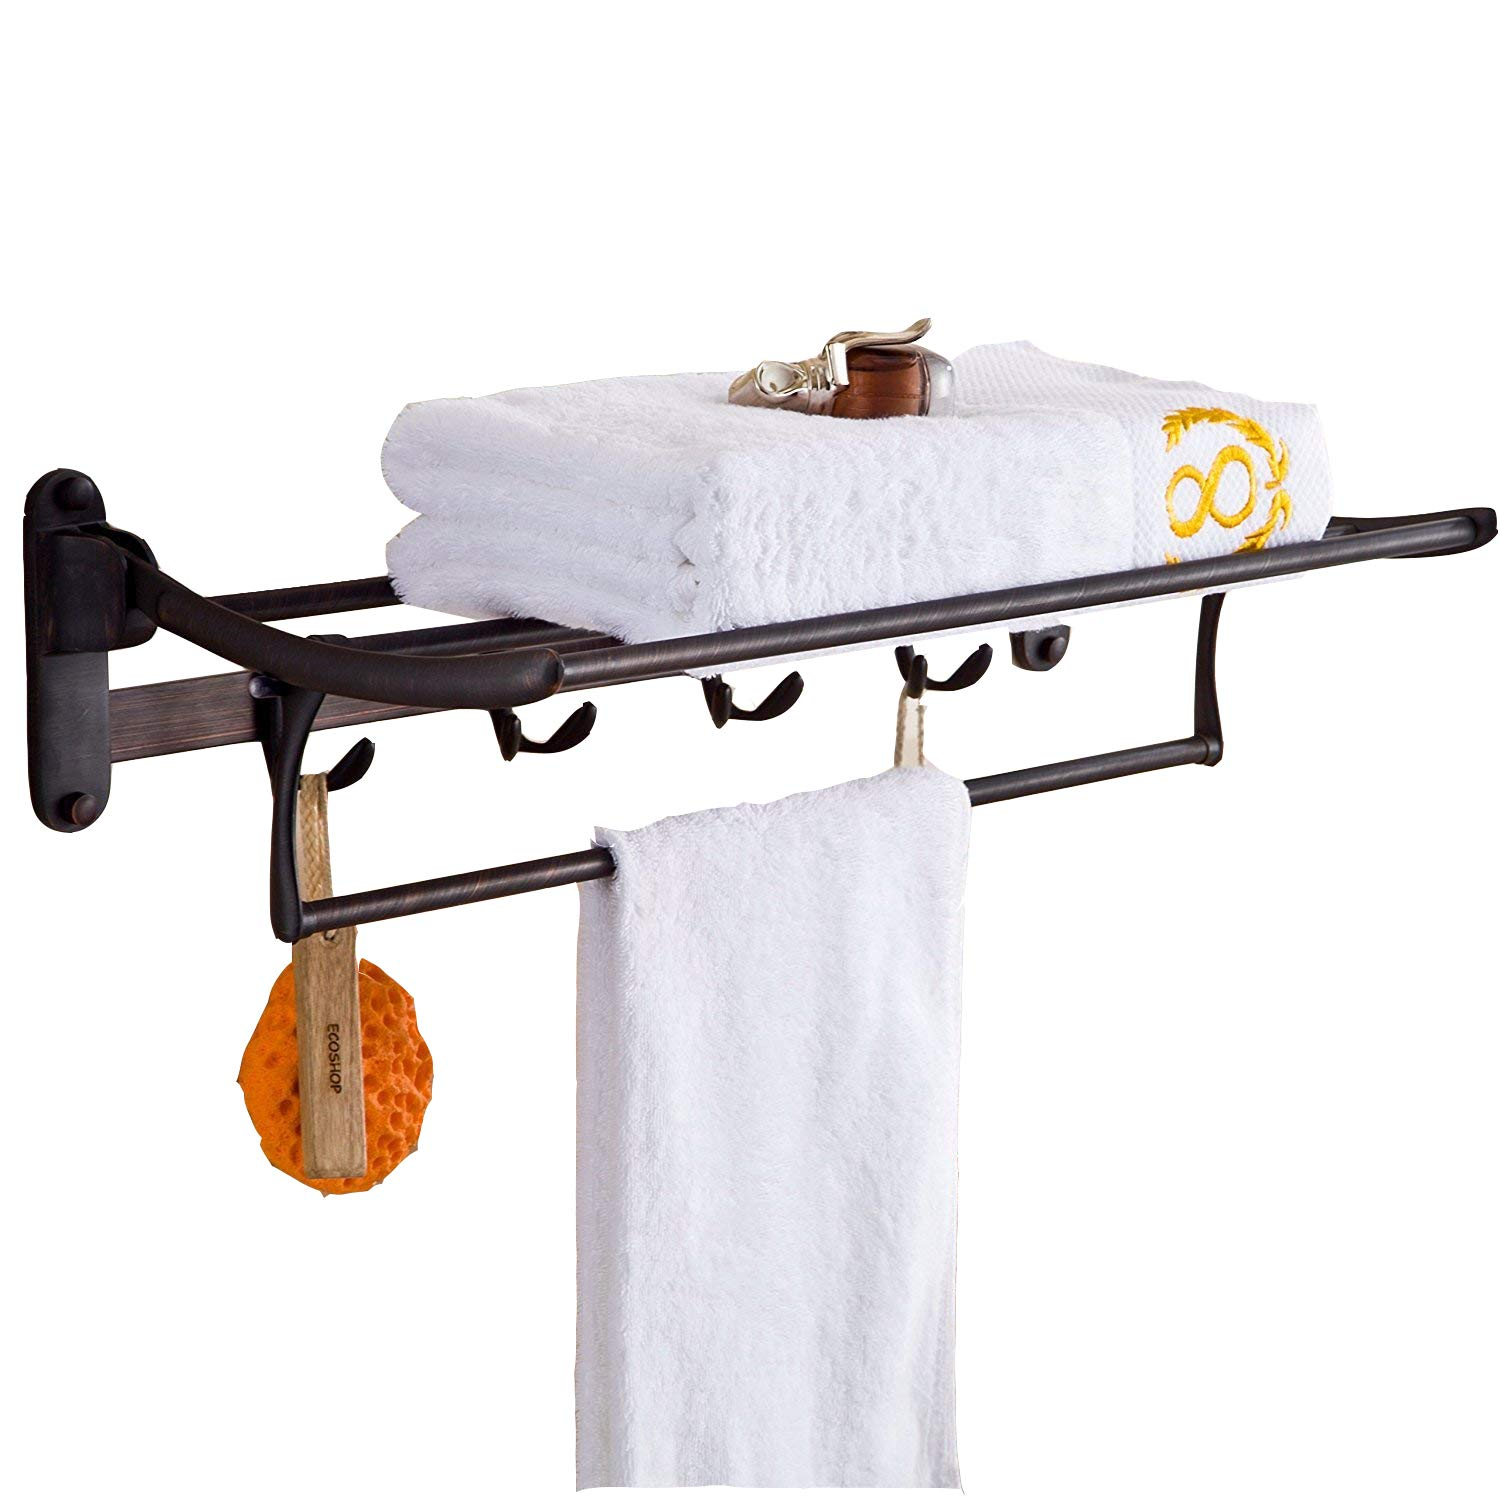 ELLO&ALLO Oil Rubbed Bronze Towel Racks for Bathroom Shelf with Foldable Towel Bar Holder and Hooks Wall Mounted Multifunctional Racks